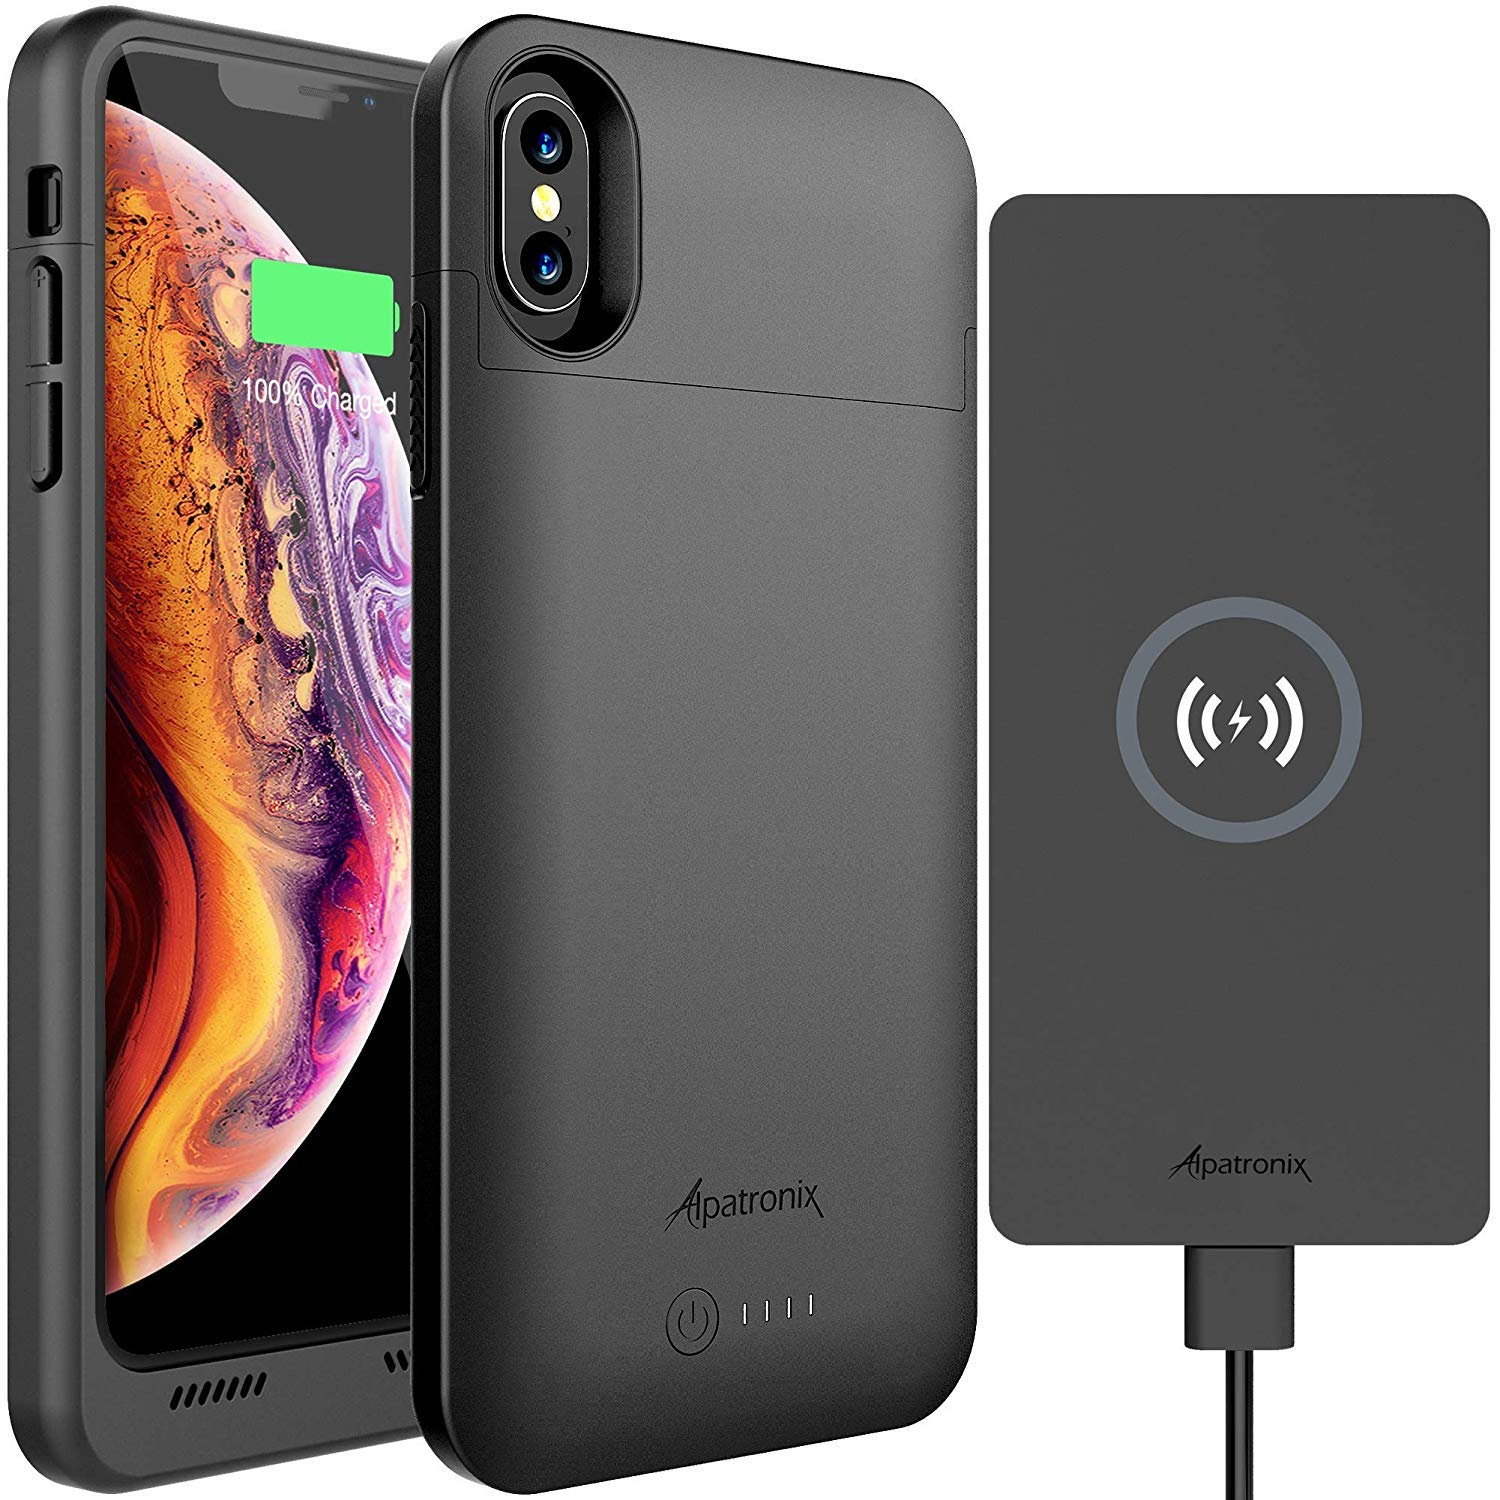 Alpatronix BXX 4200mAh Battery Case with Qi Wireless Charging Compatible for iPhone Xs & X (5.8-inch) & CX101 10W Qi Wireless Charger Pad (Black) by Alpatronix